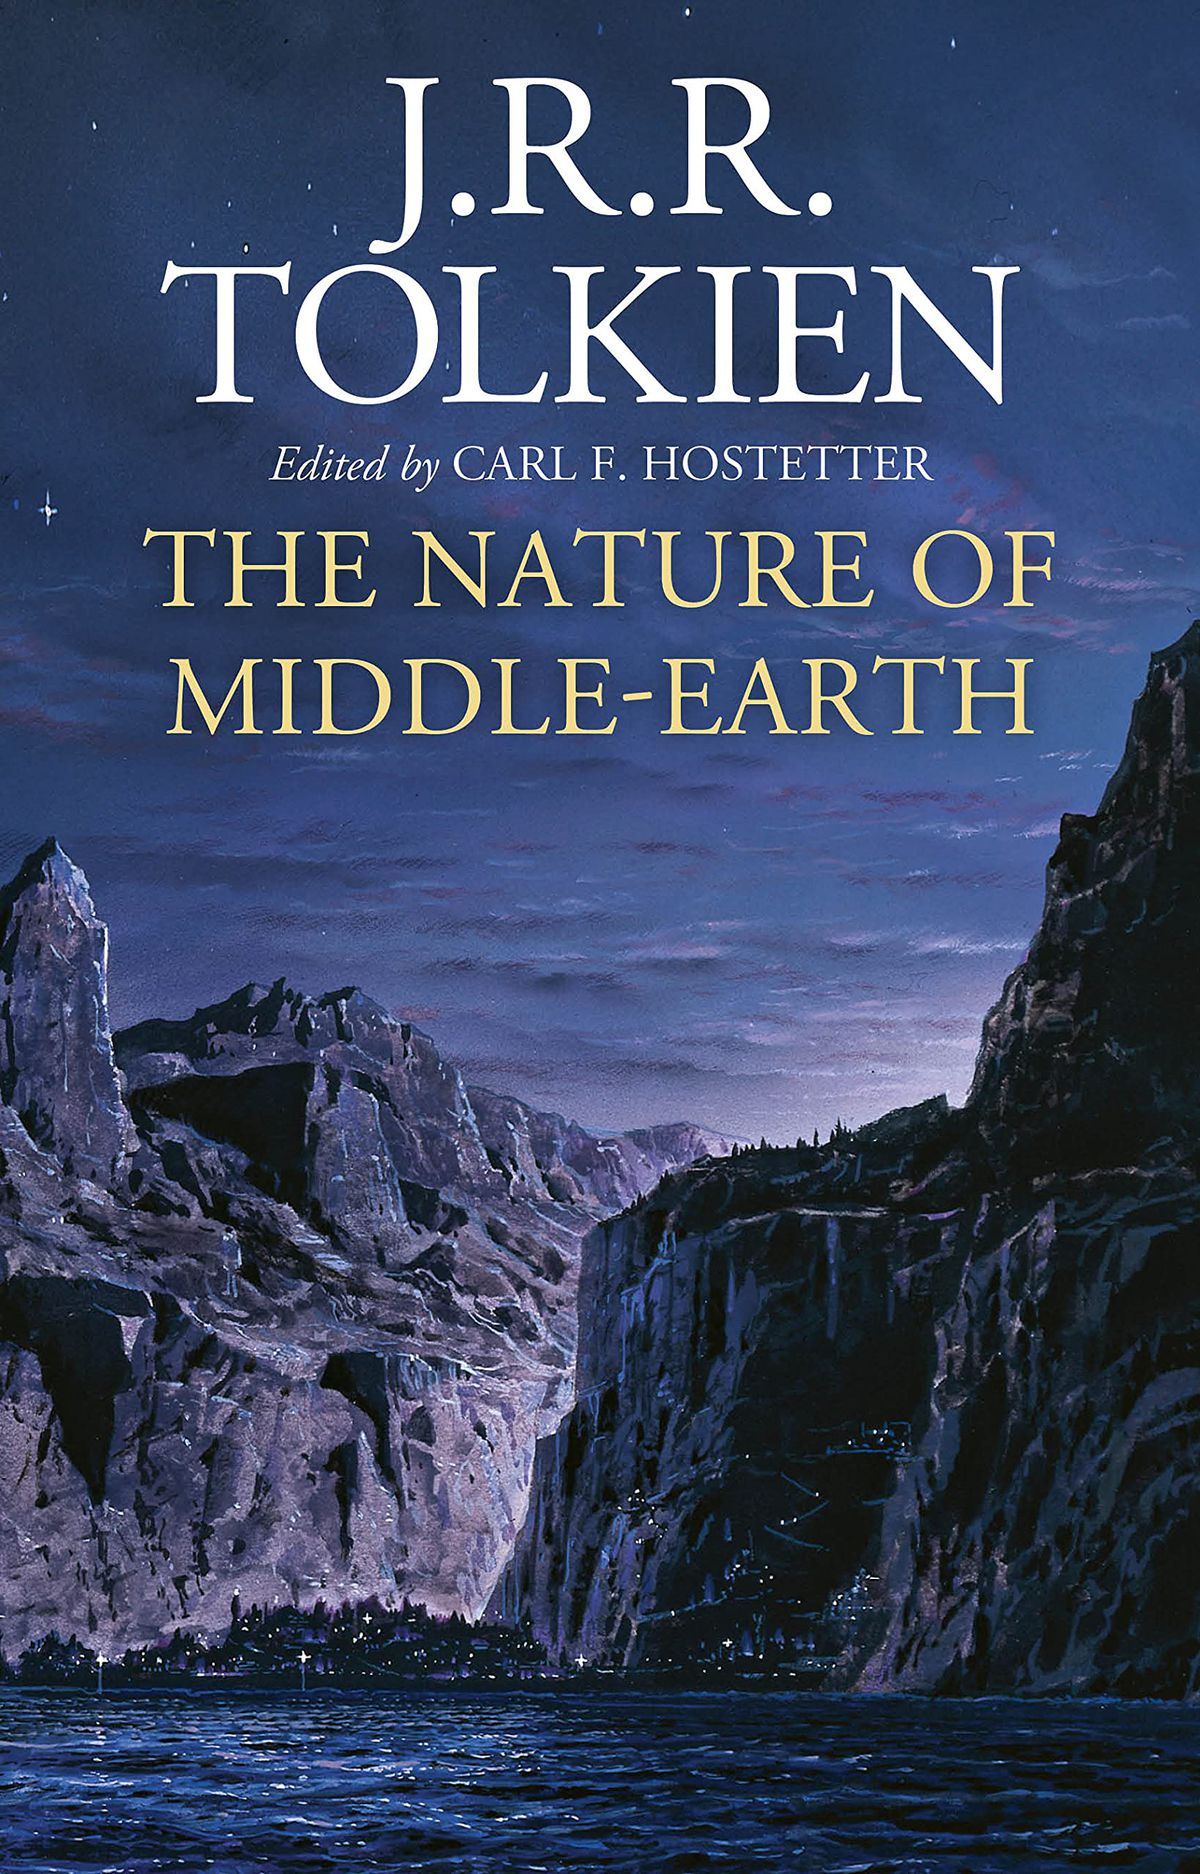 The Nature of Middle-earth by J.R.R. Tolkien  book cover